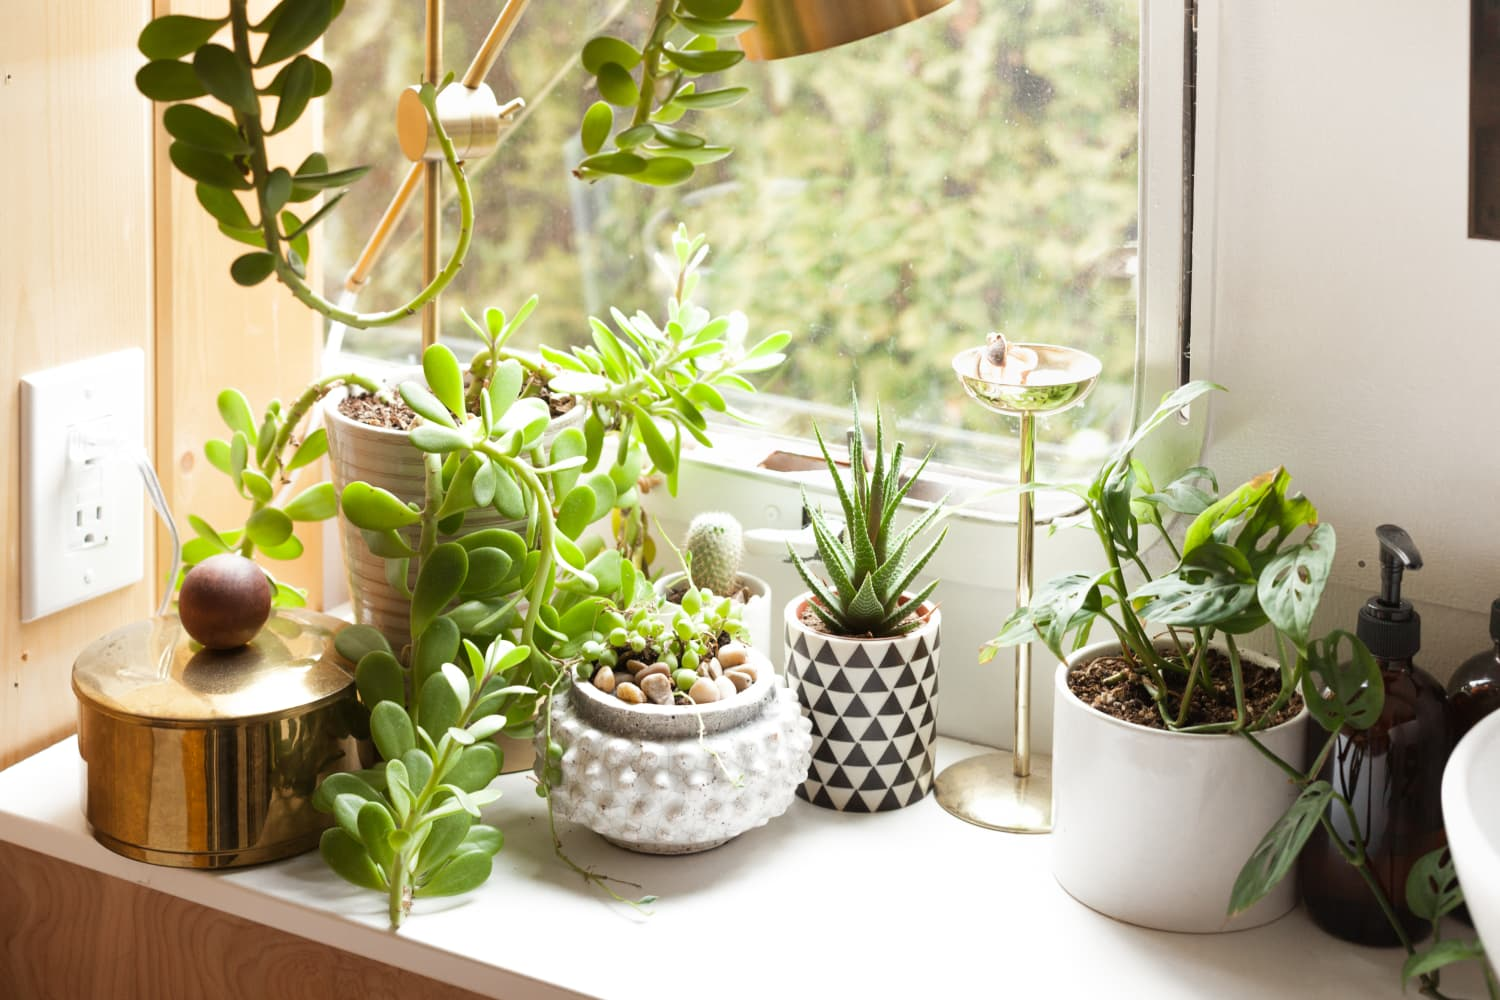 10 Great Sources for Buying Plants Online (on a Budget)